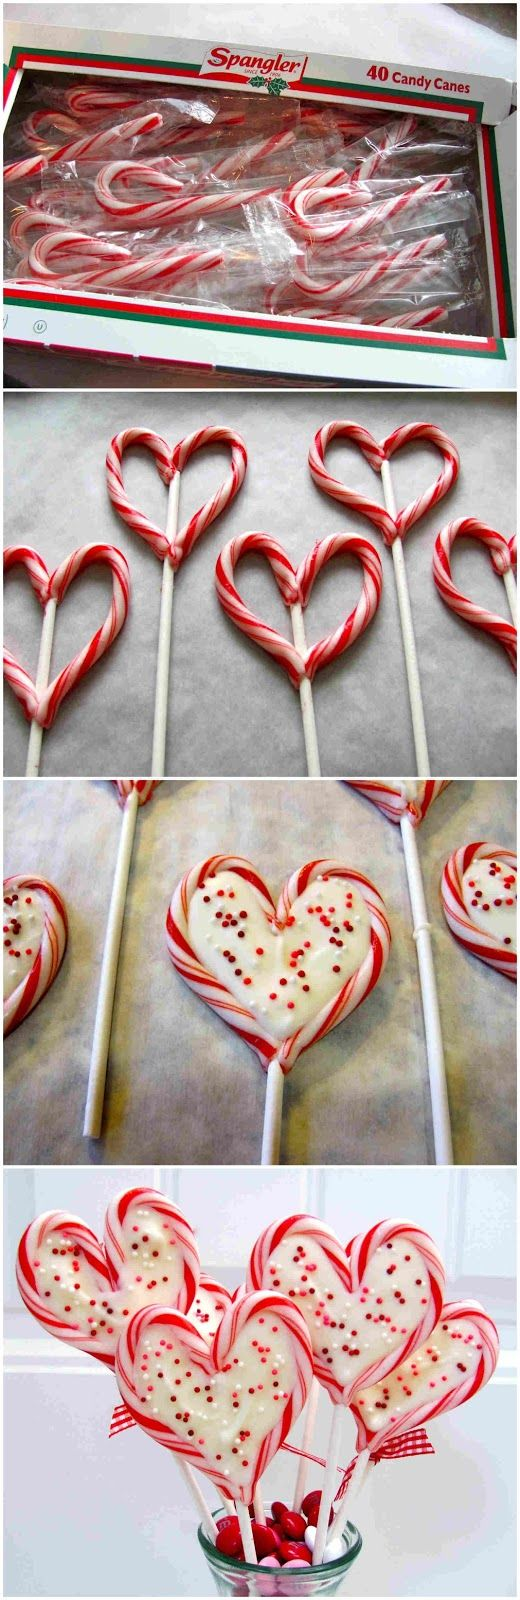 Yummy idea to represent Heart Disease Awareness